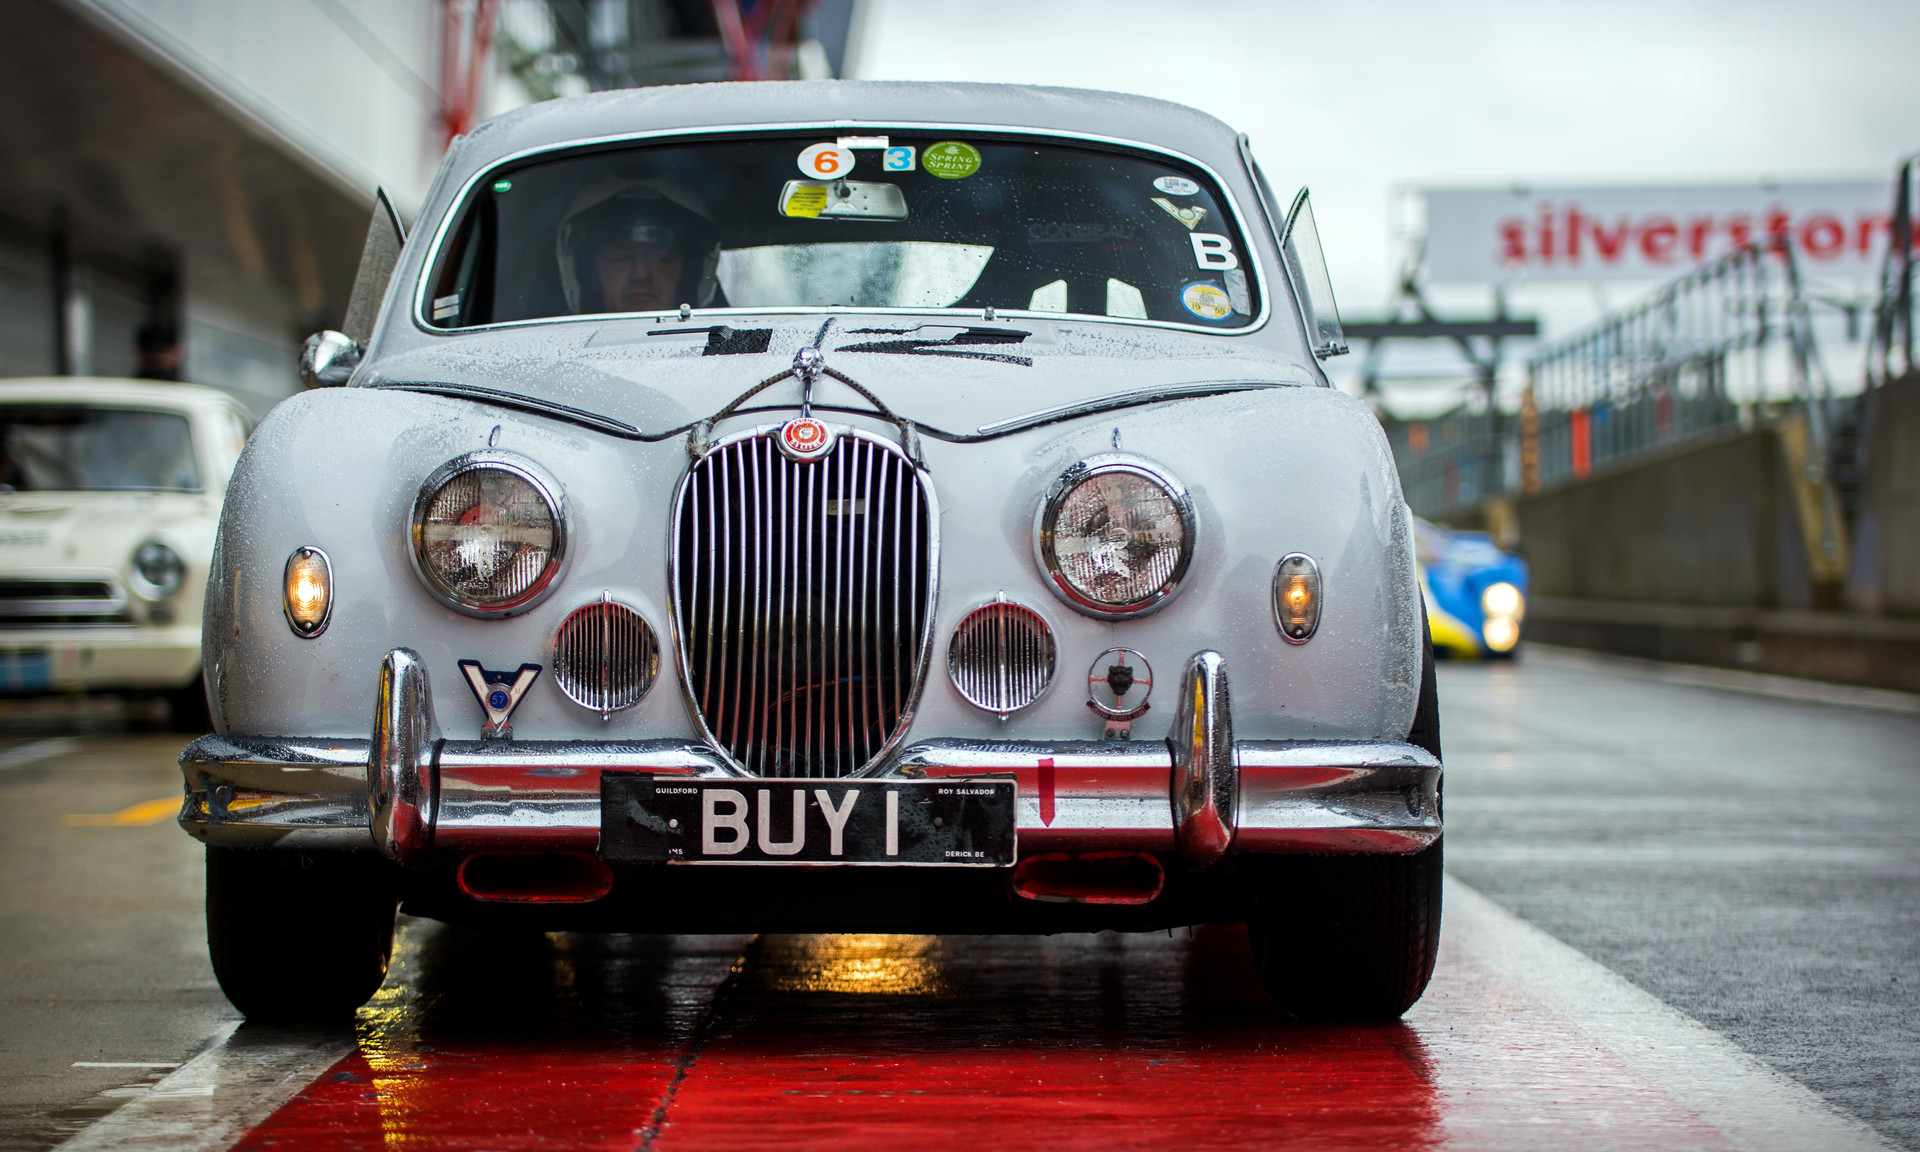 BUY 1 1959 Jaguar Mk1 at the 2018 Silverstone Classic Preview Day